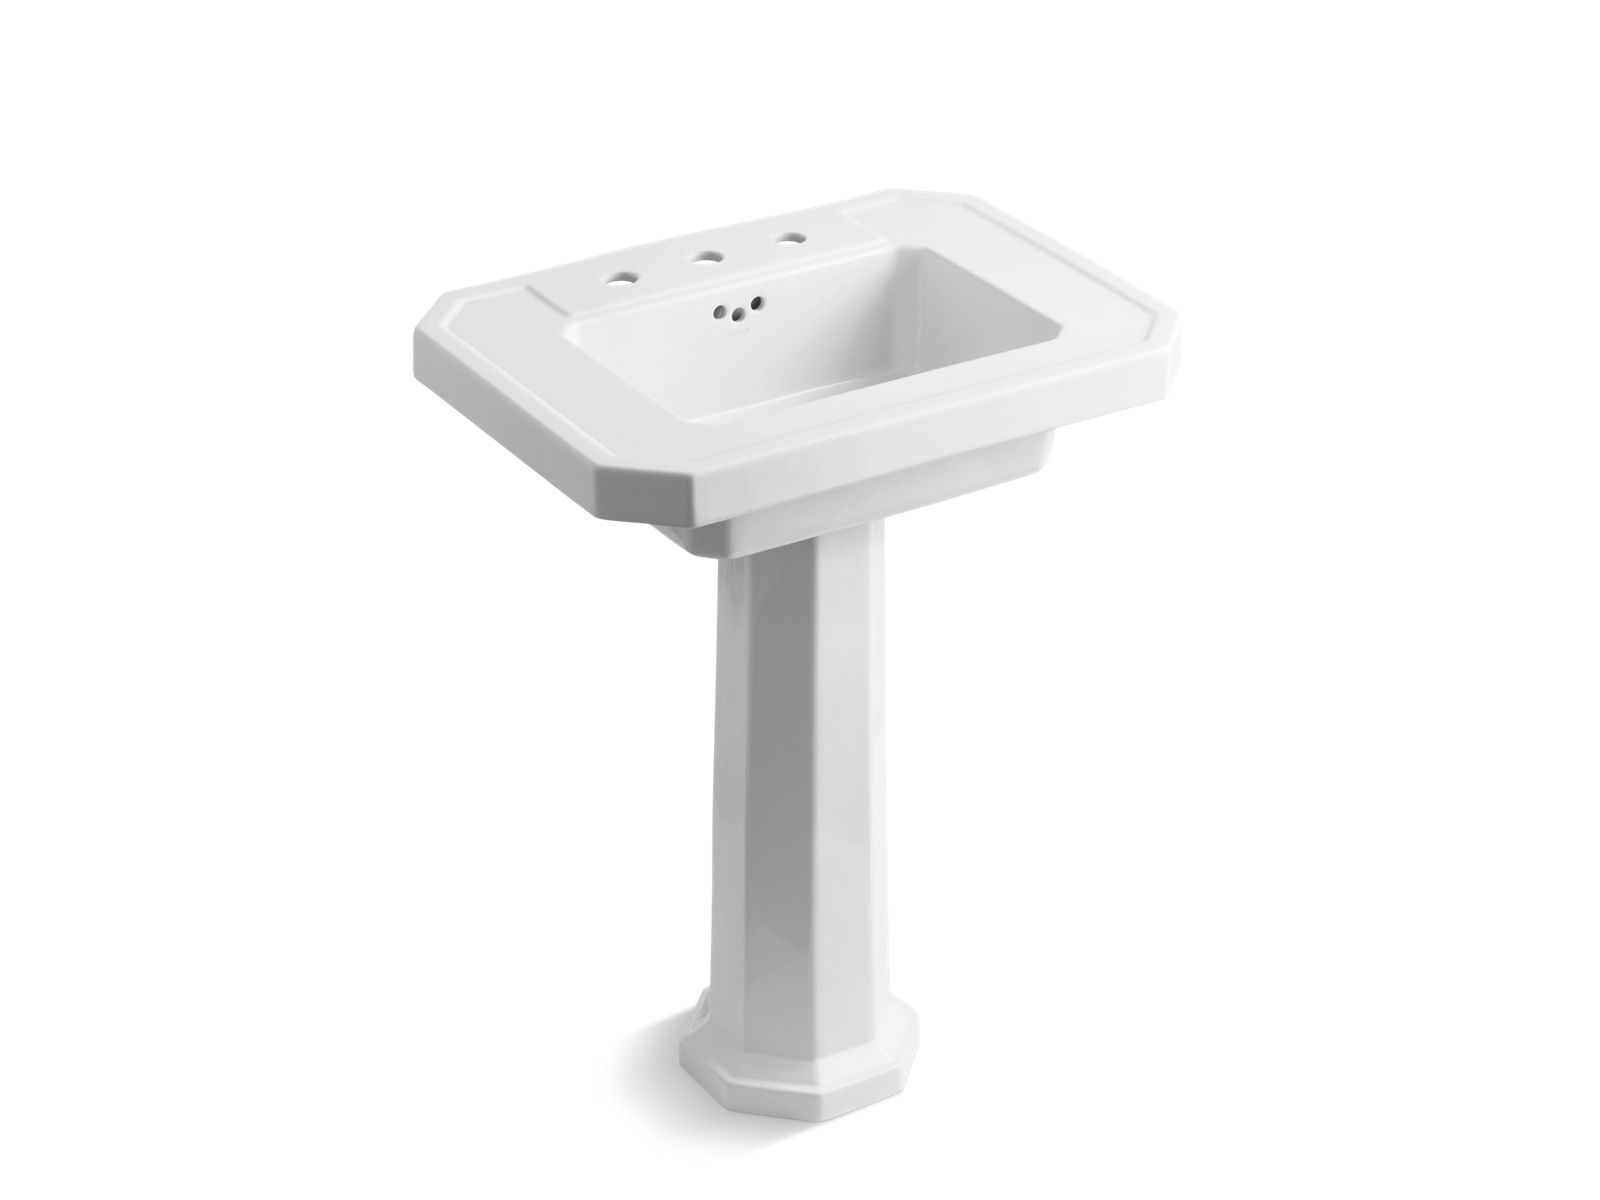 Charmant Kathryn Fireclay Basin And Pedestal With 8 Inch Centers | K 2322 8 | KOHLER